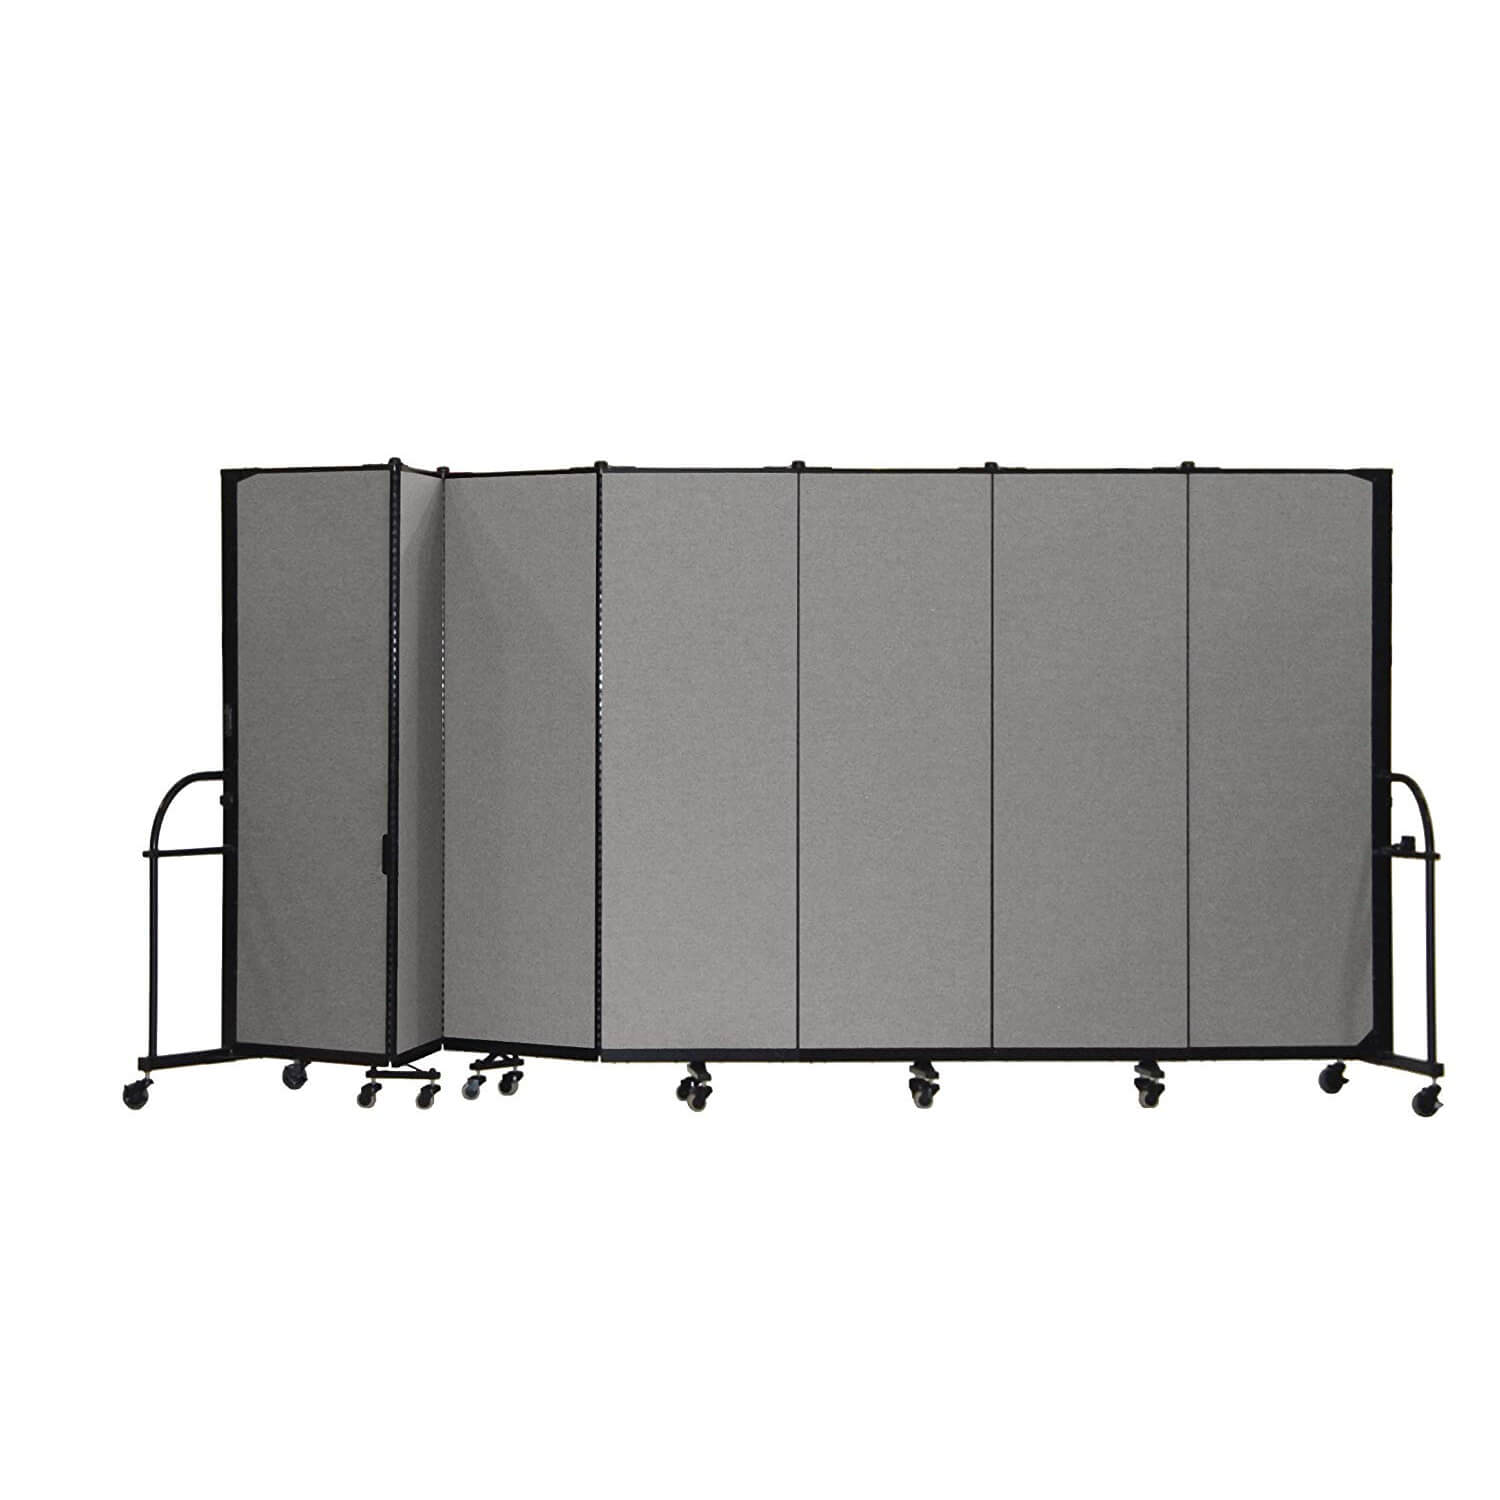 Panel room dividers CUB QSCFSL607DG RCS